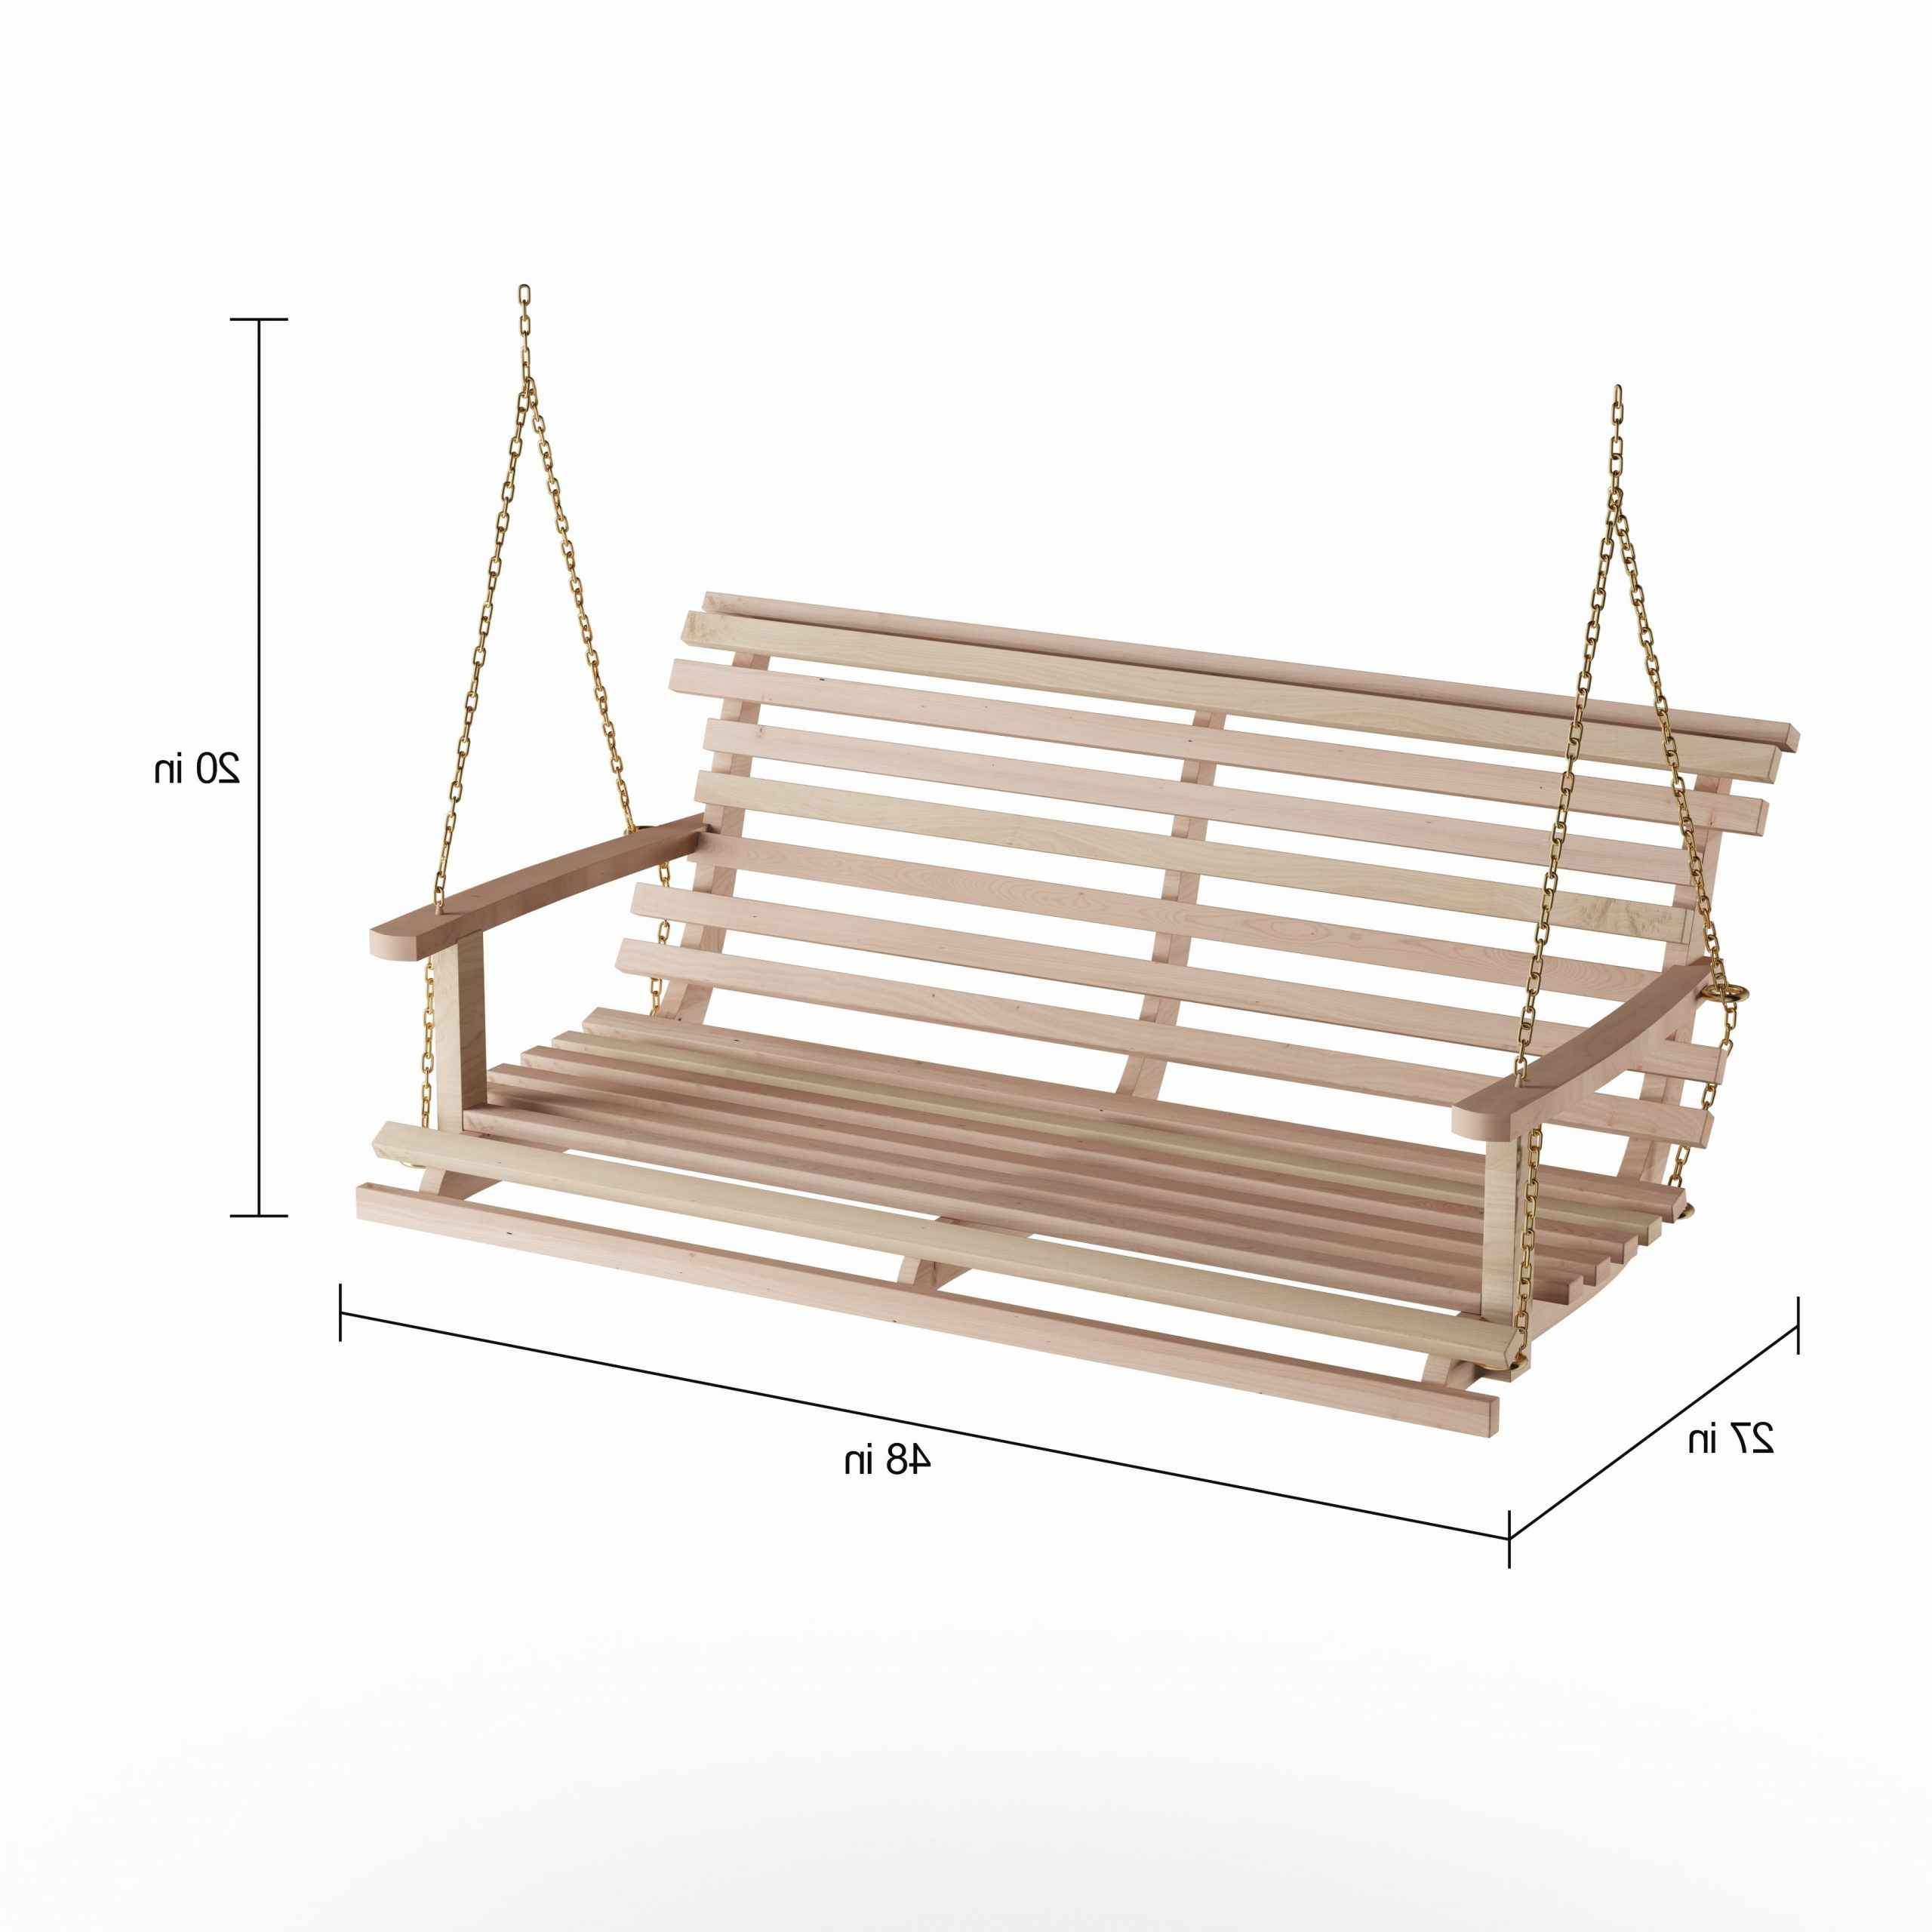 Popular Havenside Home Goodwin Acasia Wood Bench Swing With Chain Intended For Porch Swings With Chain (Gallery 7 of 26)